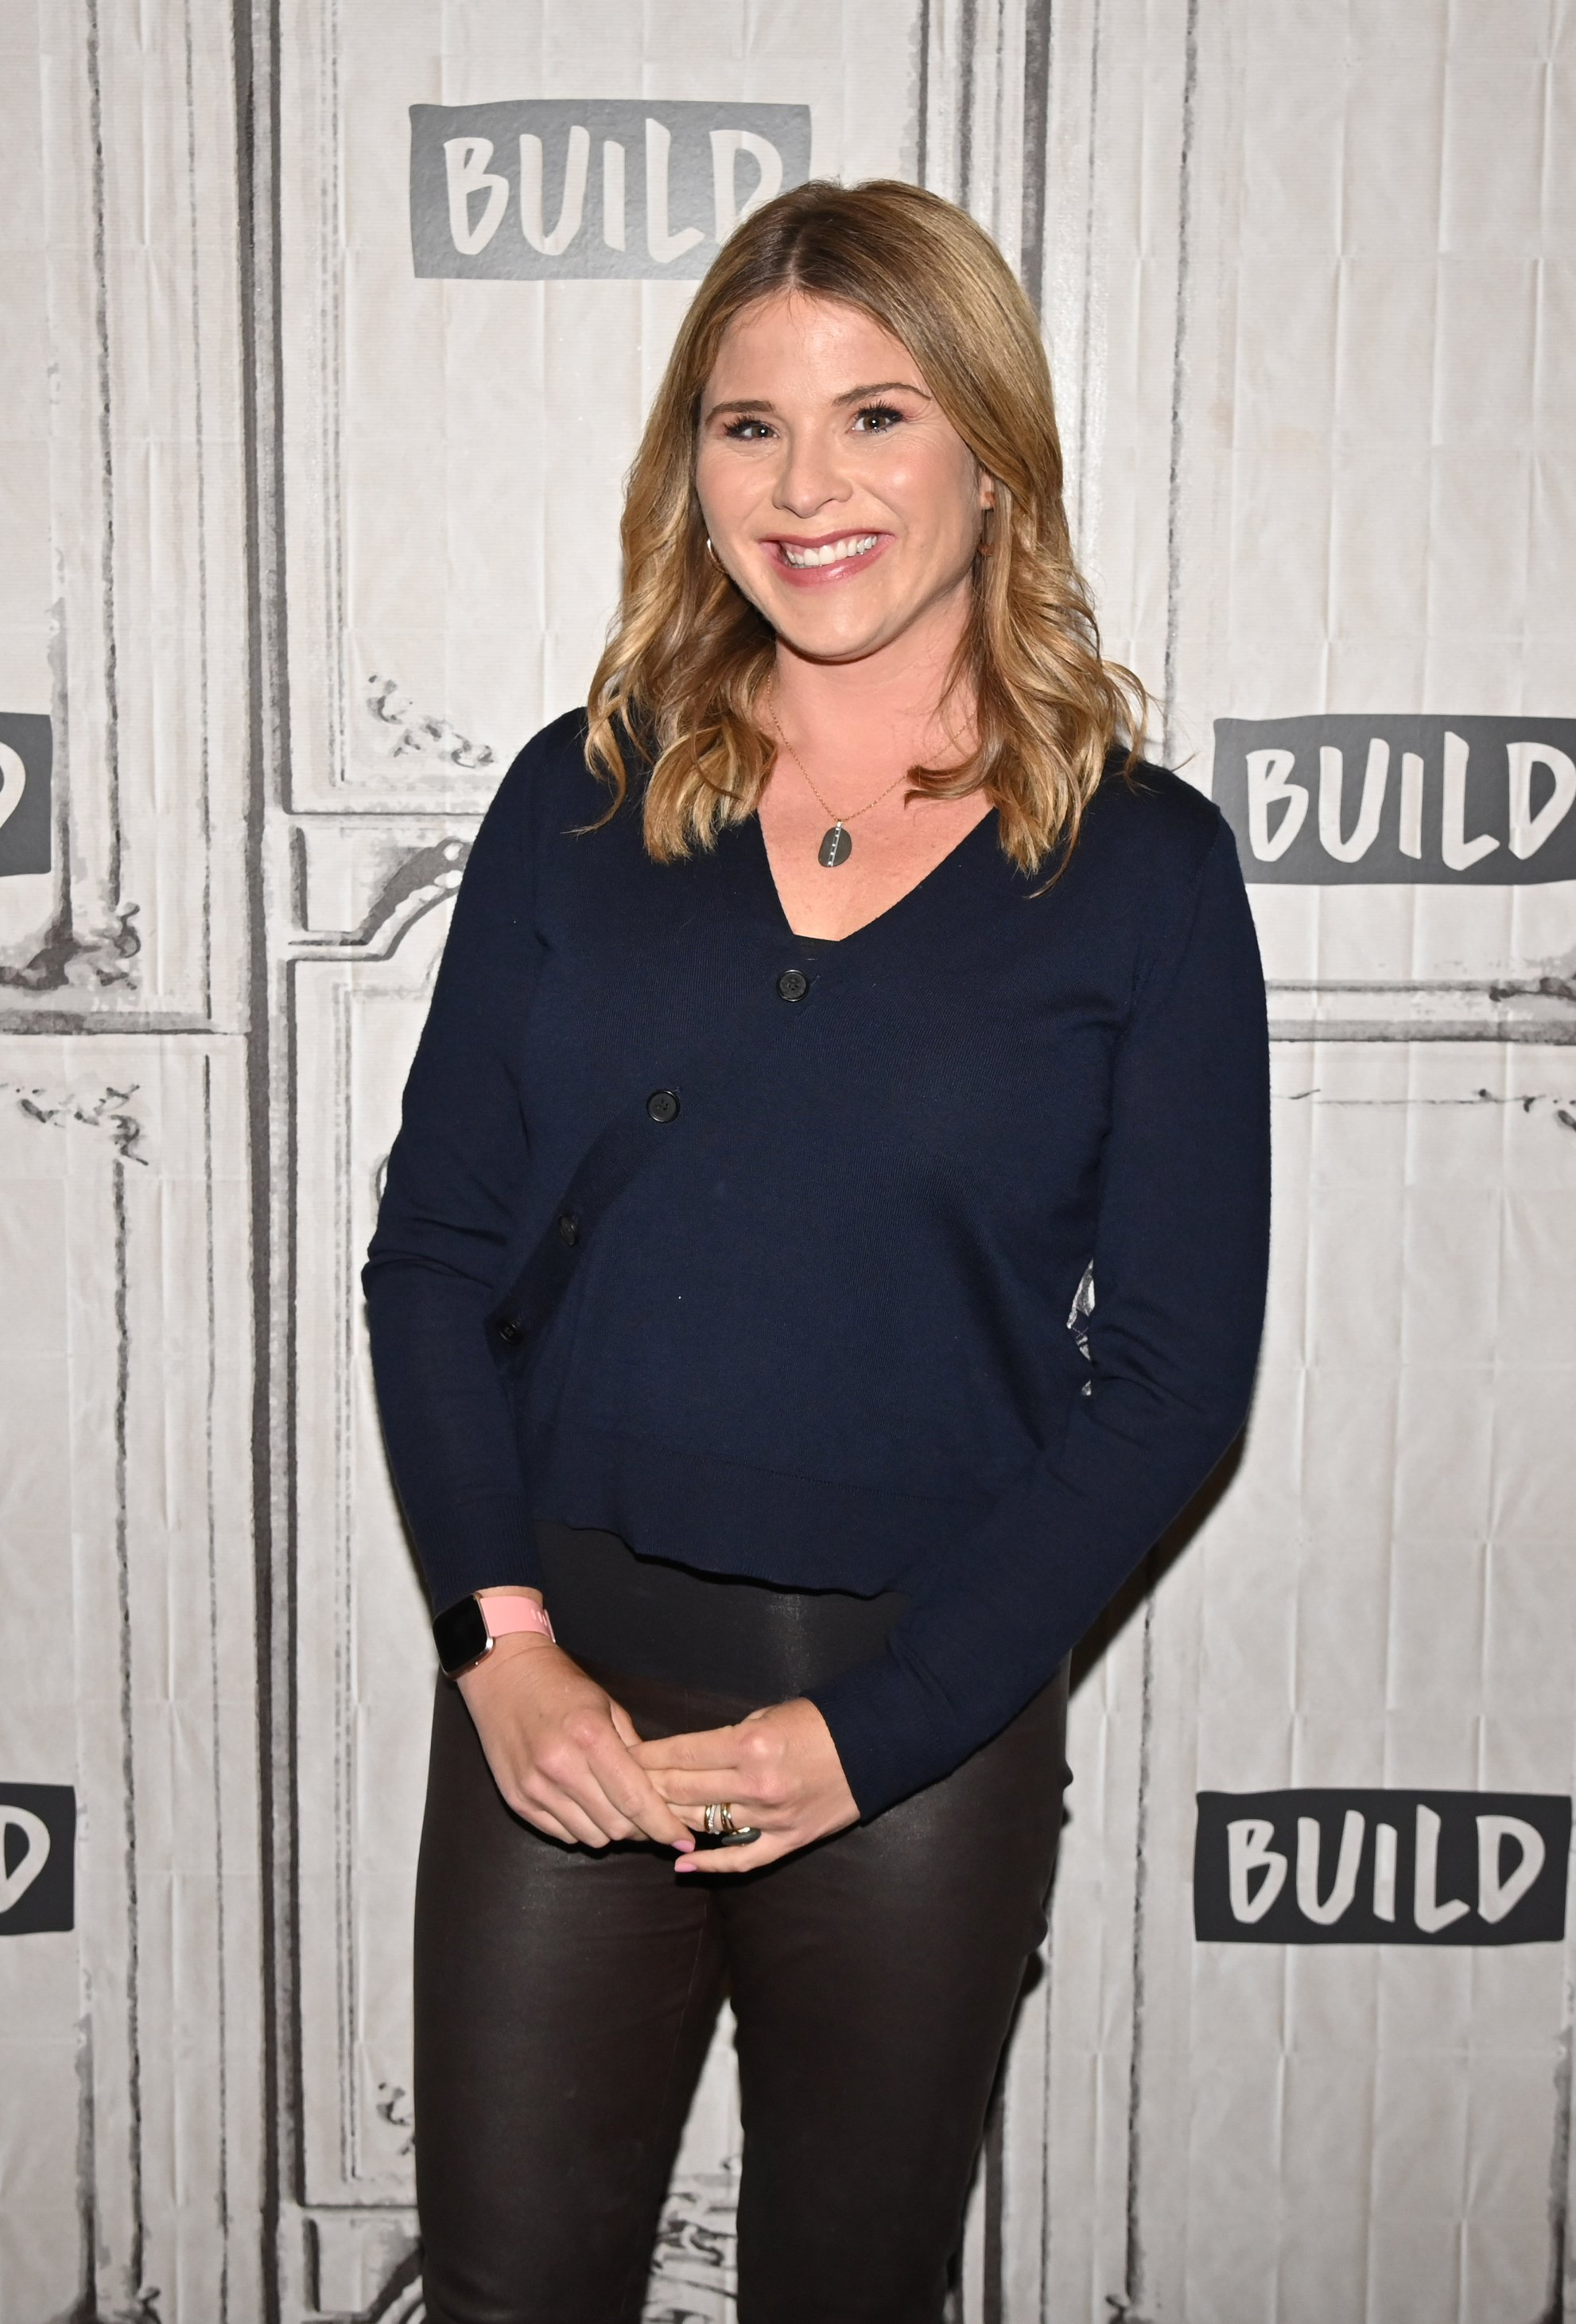 Jenna Bush Hager visits Build at Build Studio in New York City on April 8, 2019 | Photo: Getty Images